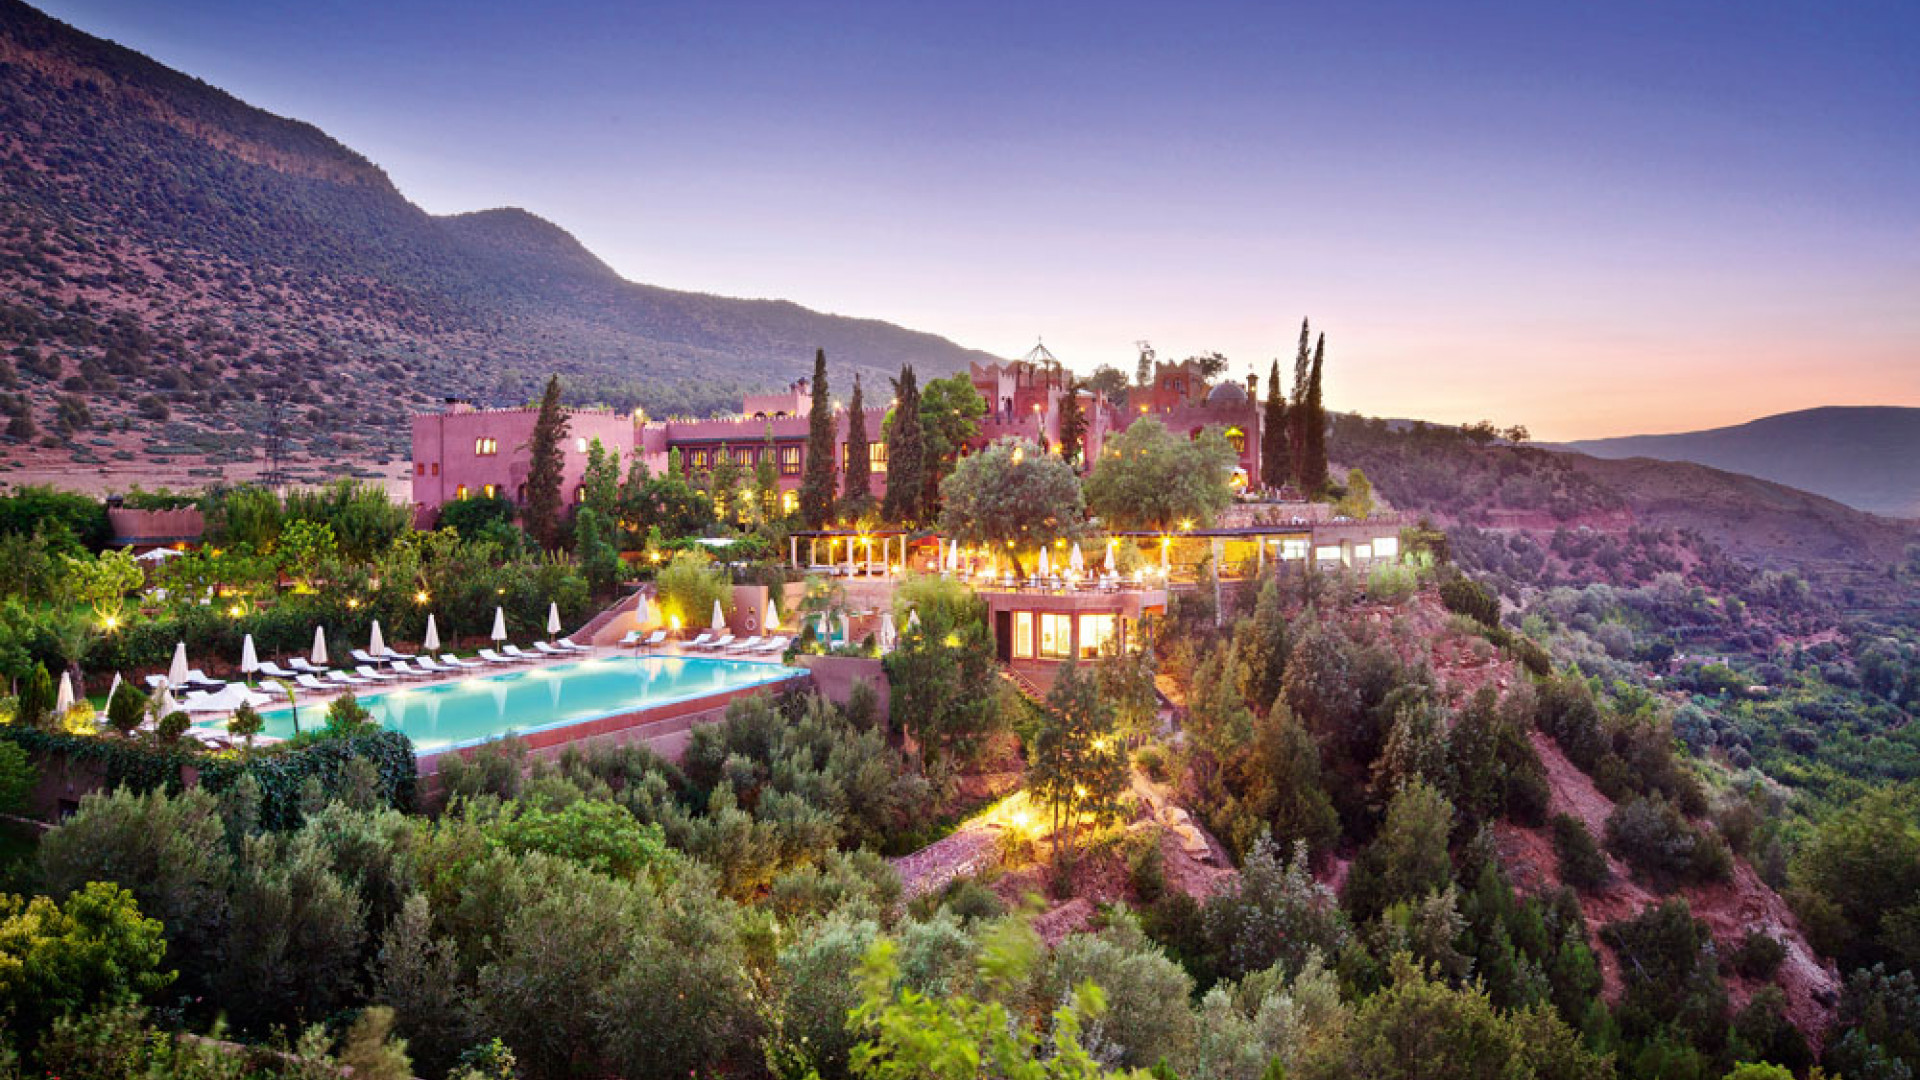 Exterior of Kasbah Tamadot in the Moroccan Atlas Mountains